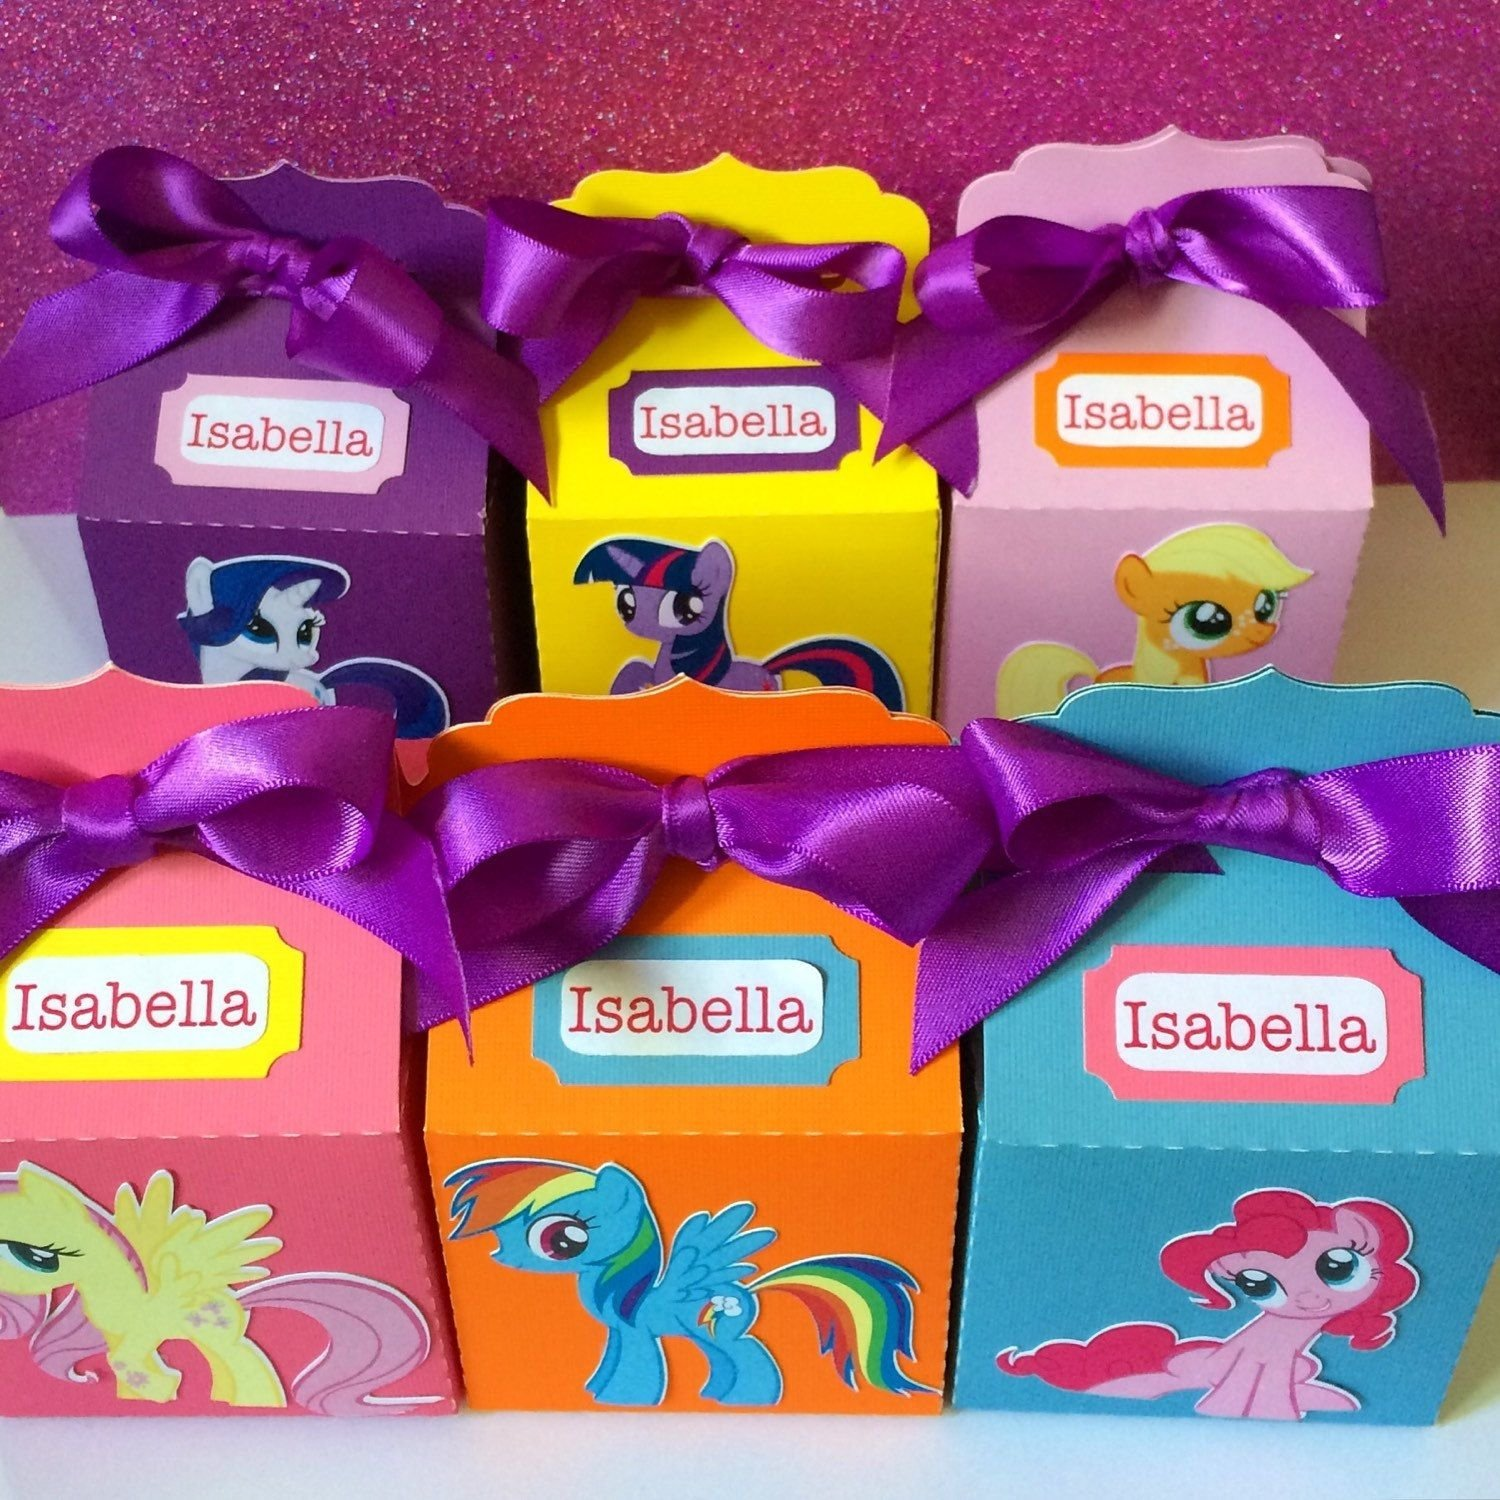 10 Stylish My Little Pony Craft Ideas my little pony party personalized favor boxes mymiamicrafts 2020